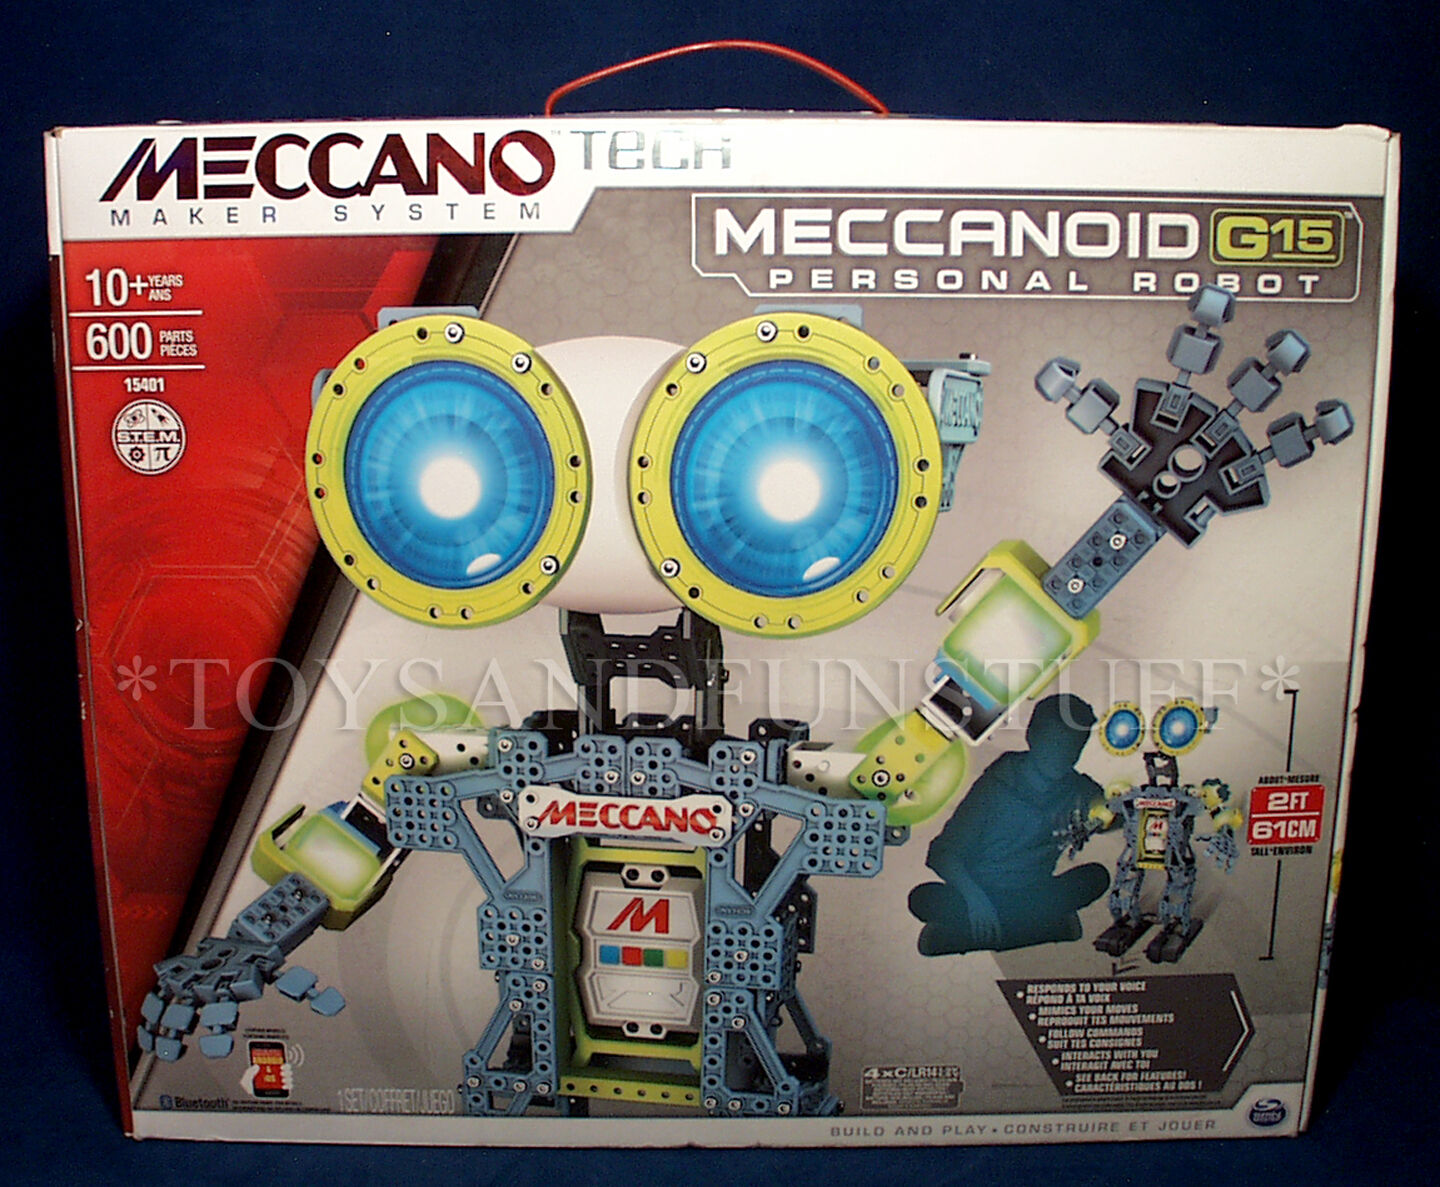 New MECCANOID G15 PERSONAL ROBOT Meccano Tech INTERACTIVE Building Set 15401